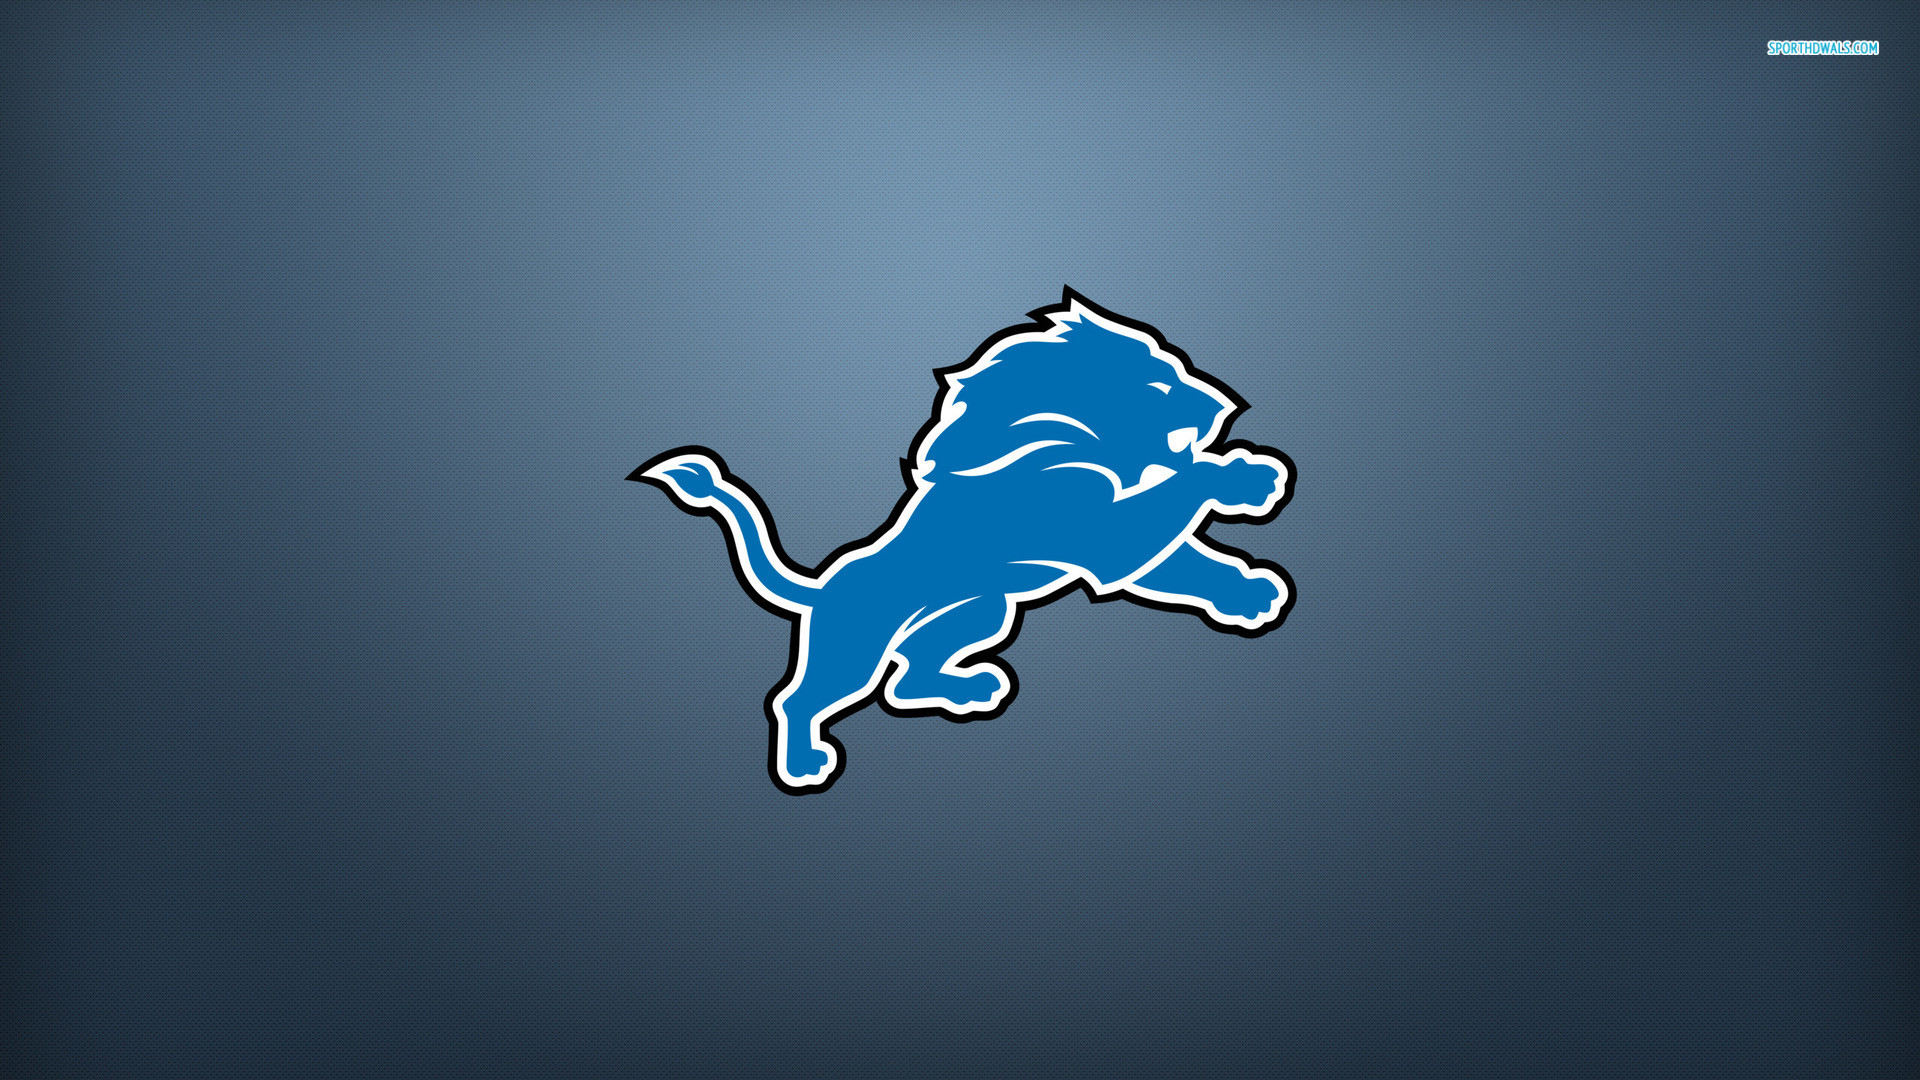 Download free detroit lions wallpapers for your mobile phone by | HD  Wallpapers | Pinterest | Detroit lions wallpaper